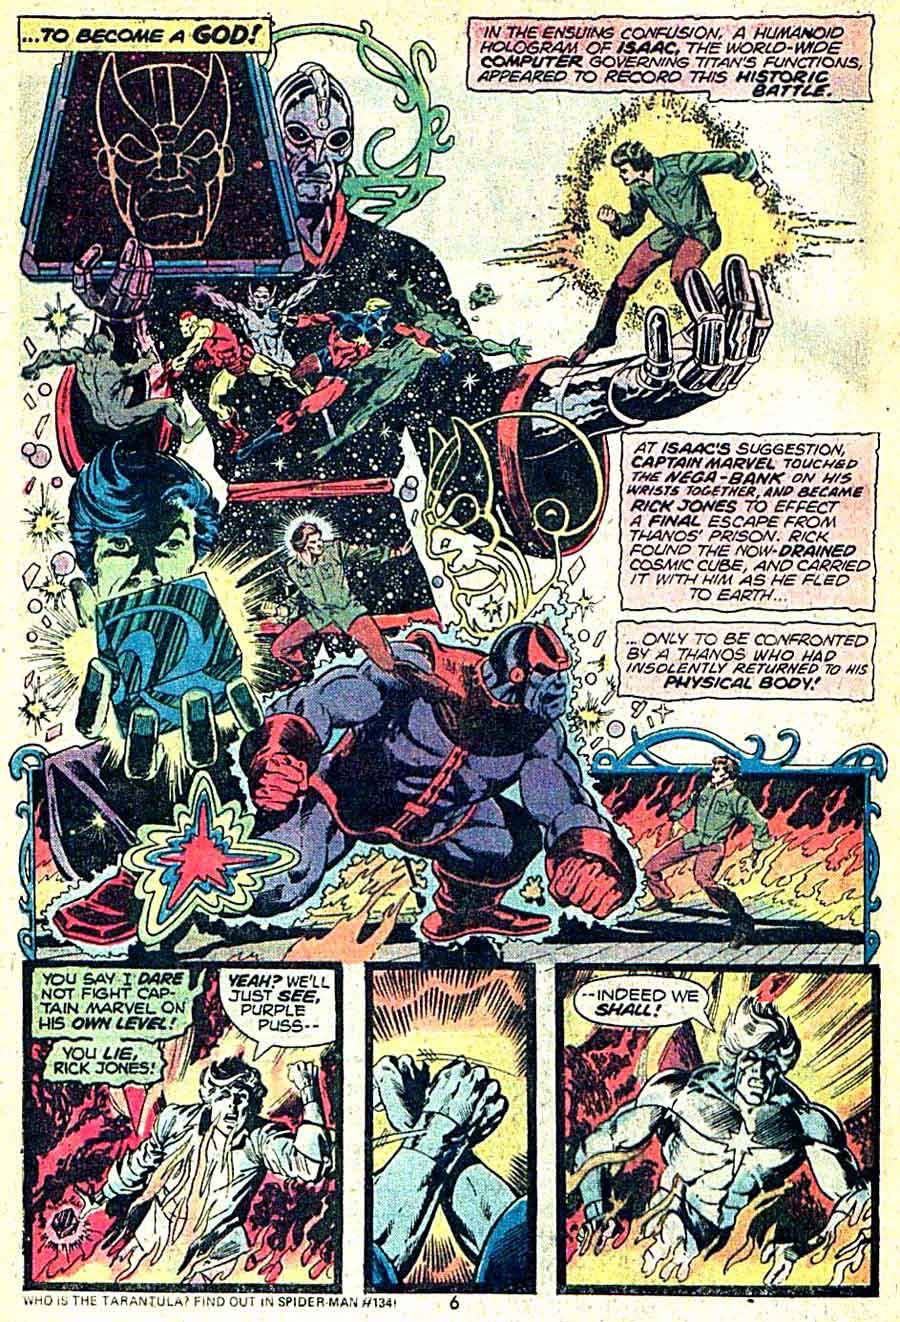 Captain Marvel #33 marvel 1970s bronze age comic book page art by Jim Starlin